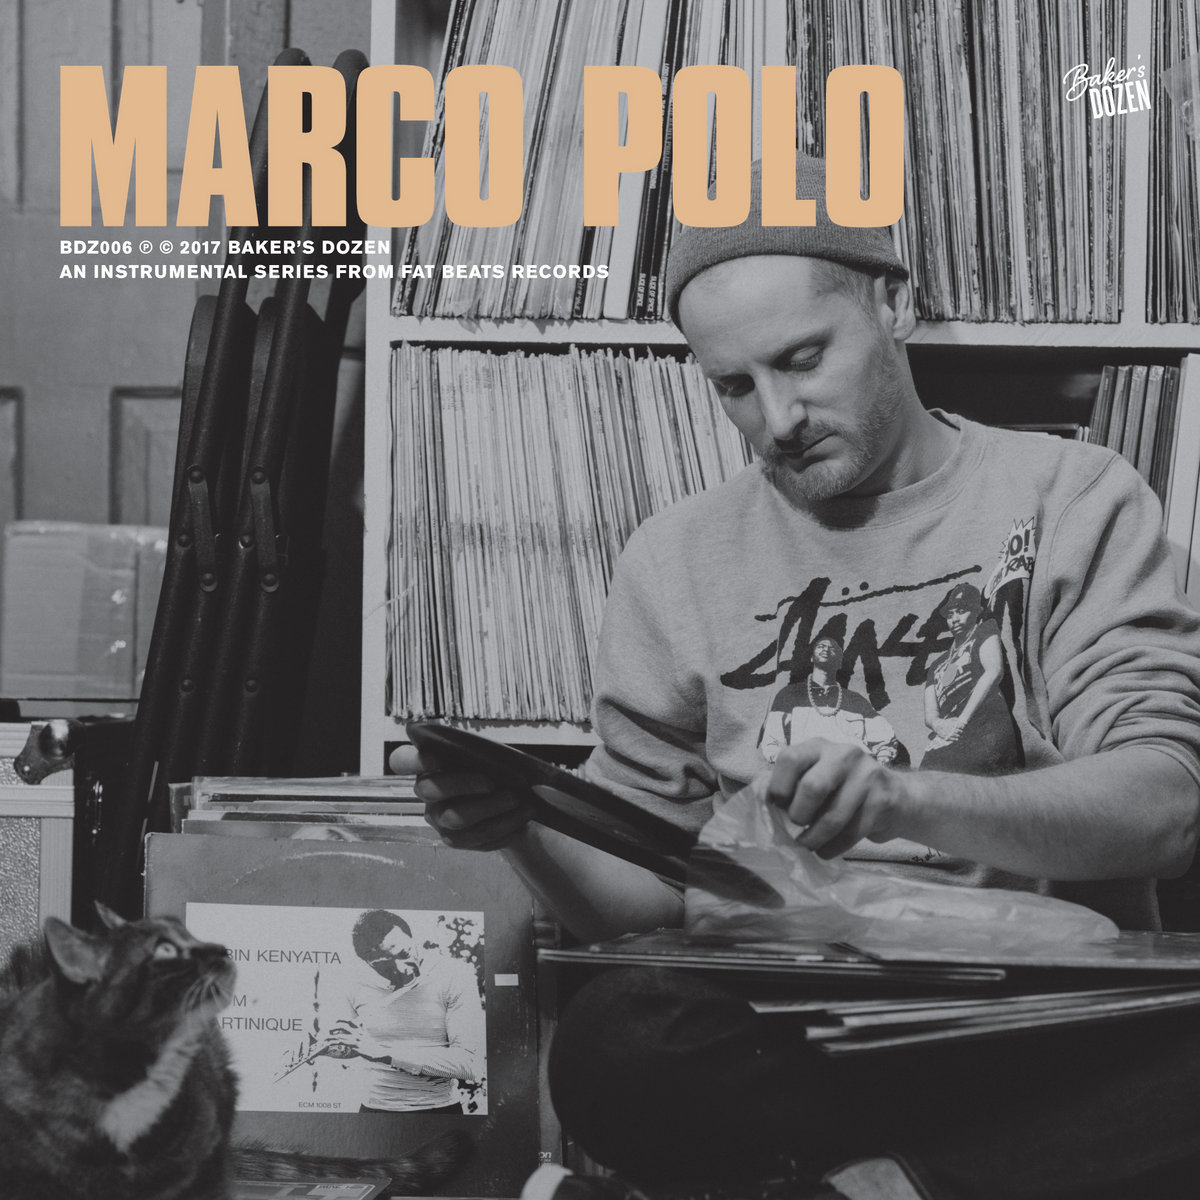 low priced 23616 90f66 Baker's Dozen: Marco Polo | Marco Polo